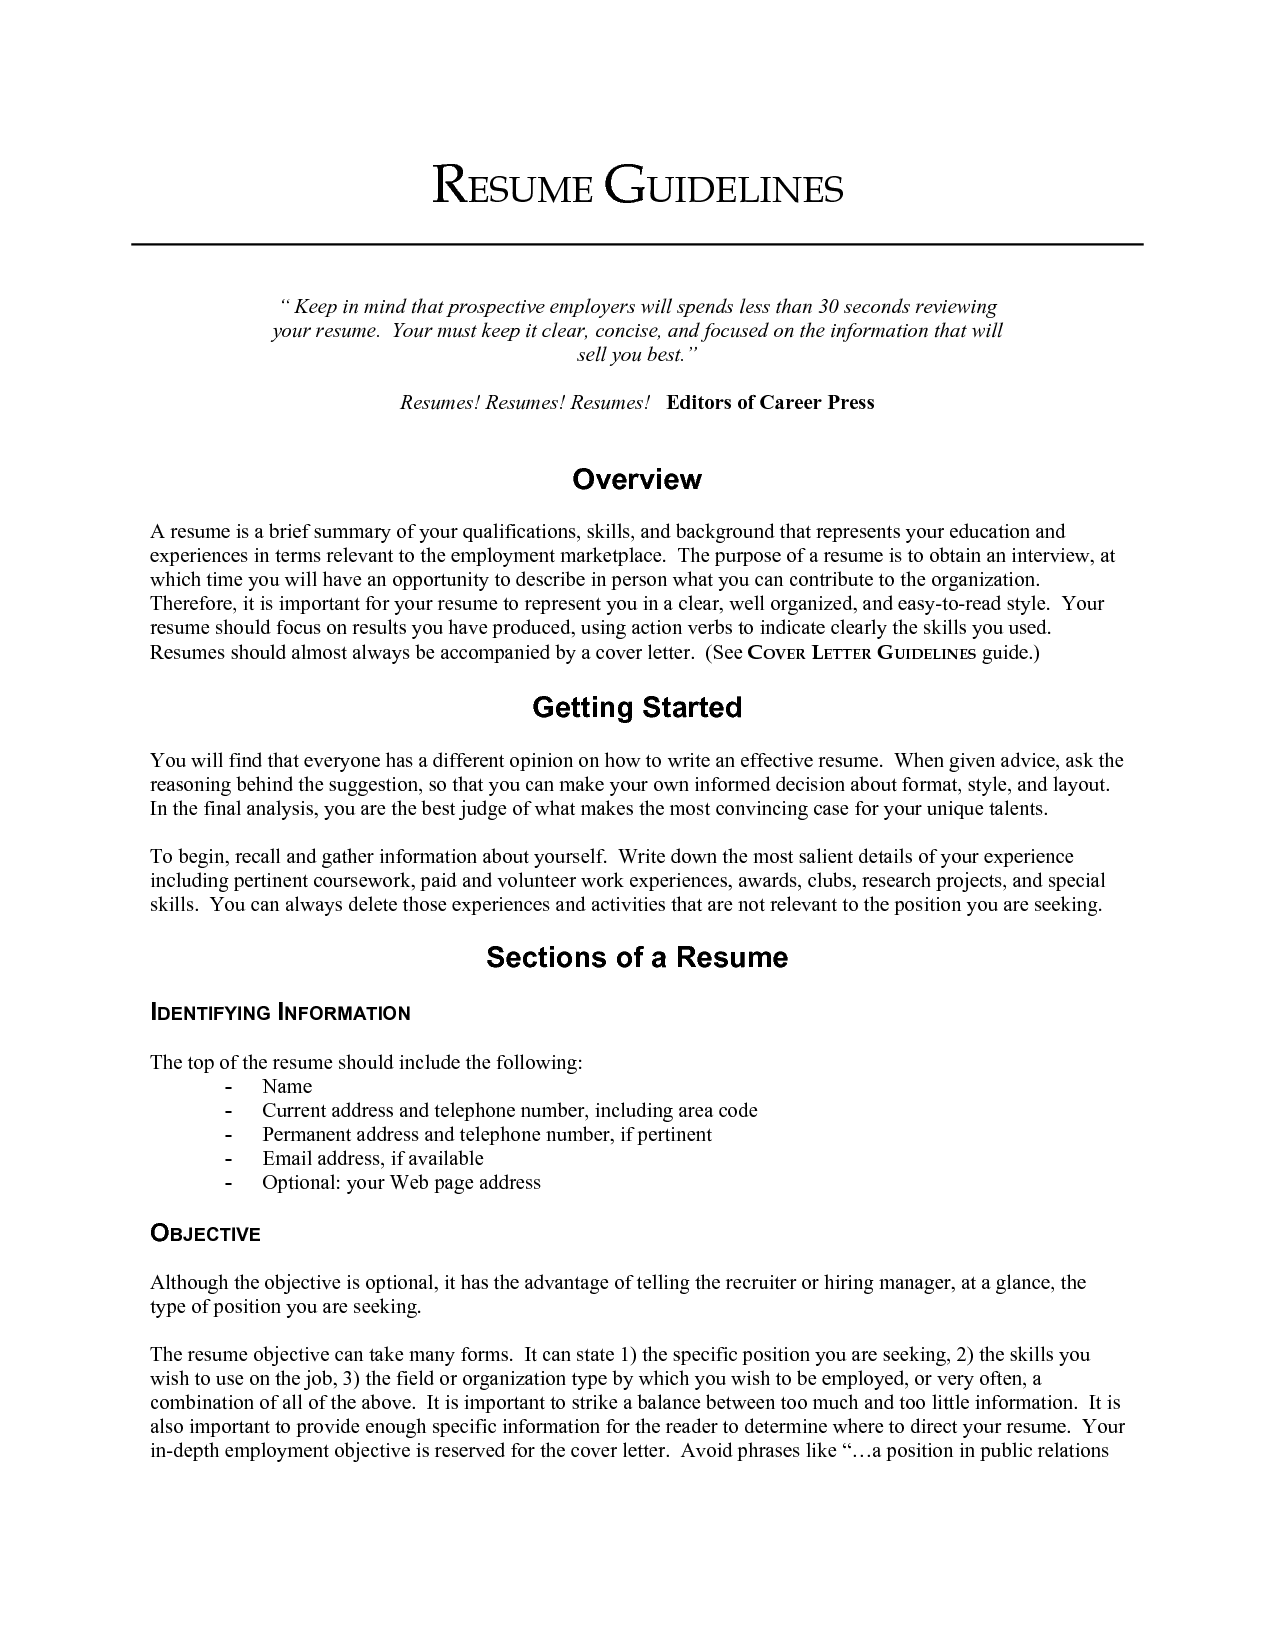 Best Resume Objectives Amusing Objective Lines On Resumes Resume Builderresume Objective Examples Inspiration Design